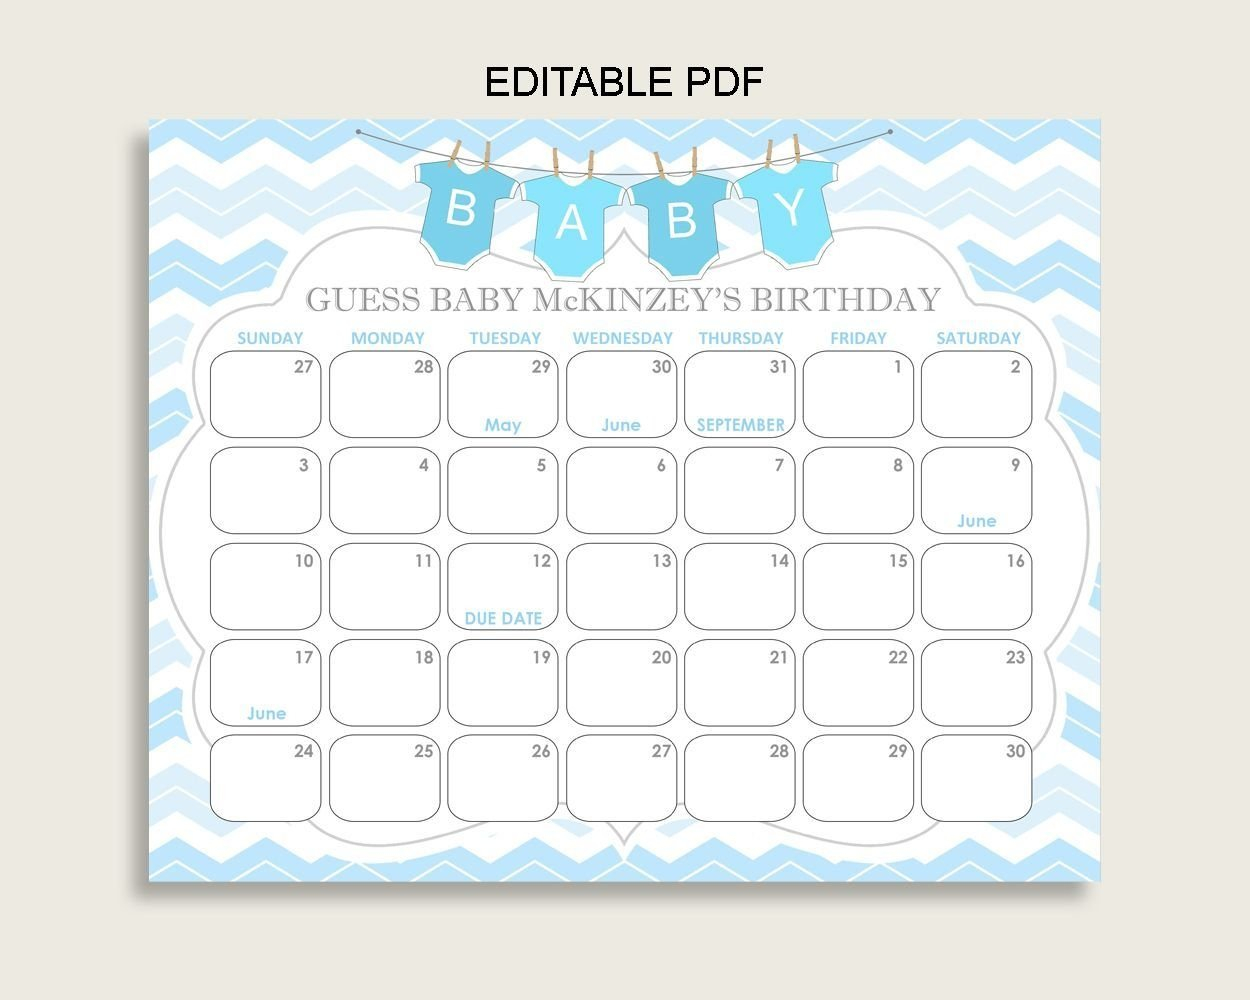 How To Guess Baby'S Due Date Calendar Printable – Get Your Guess Baby'S Due Date Calendar Printable